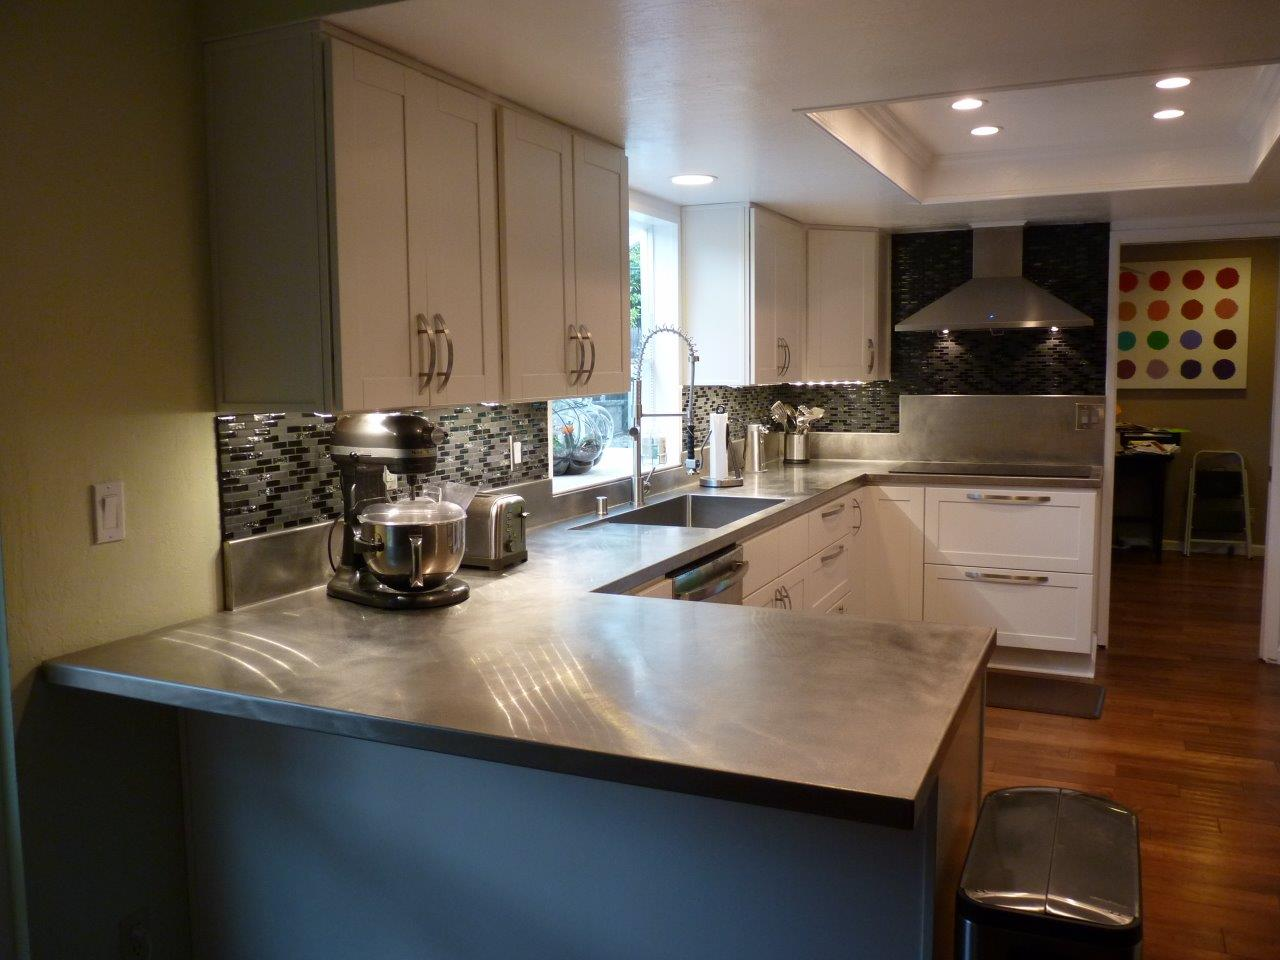 Stainless Countertop Custom 16 Ga Stainless Steel Countertop With Vibration Finish